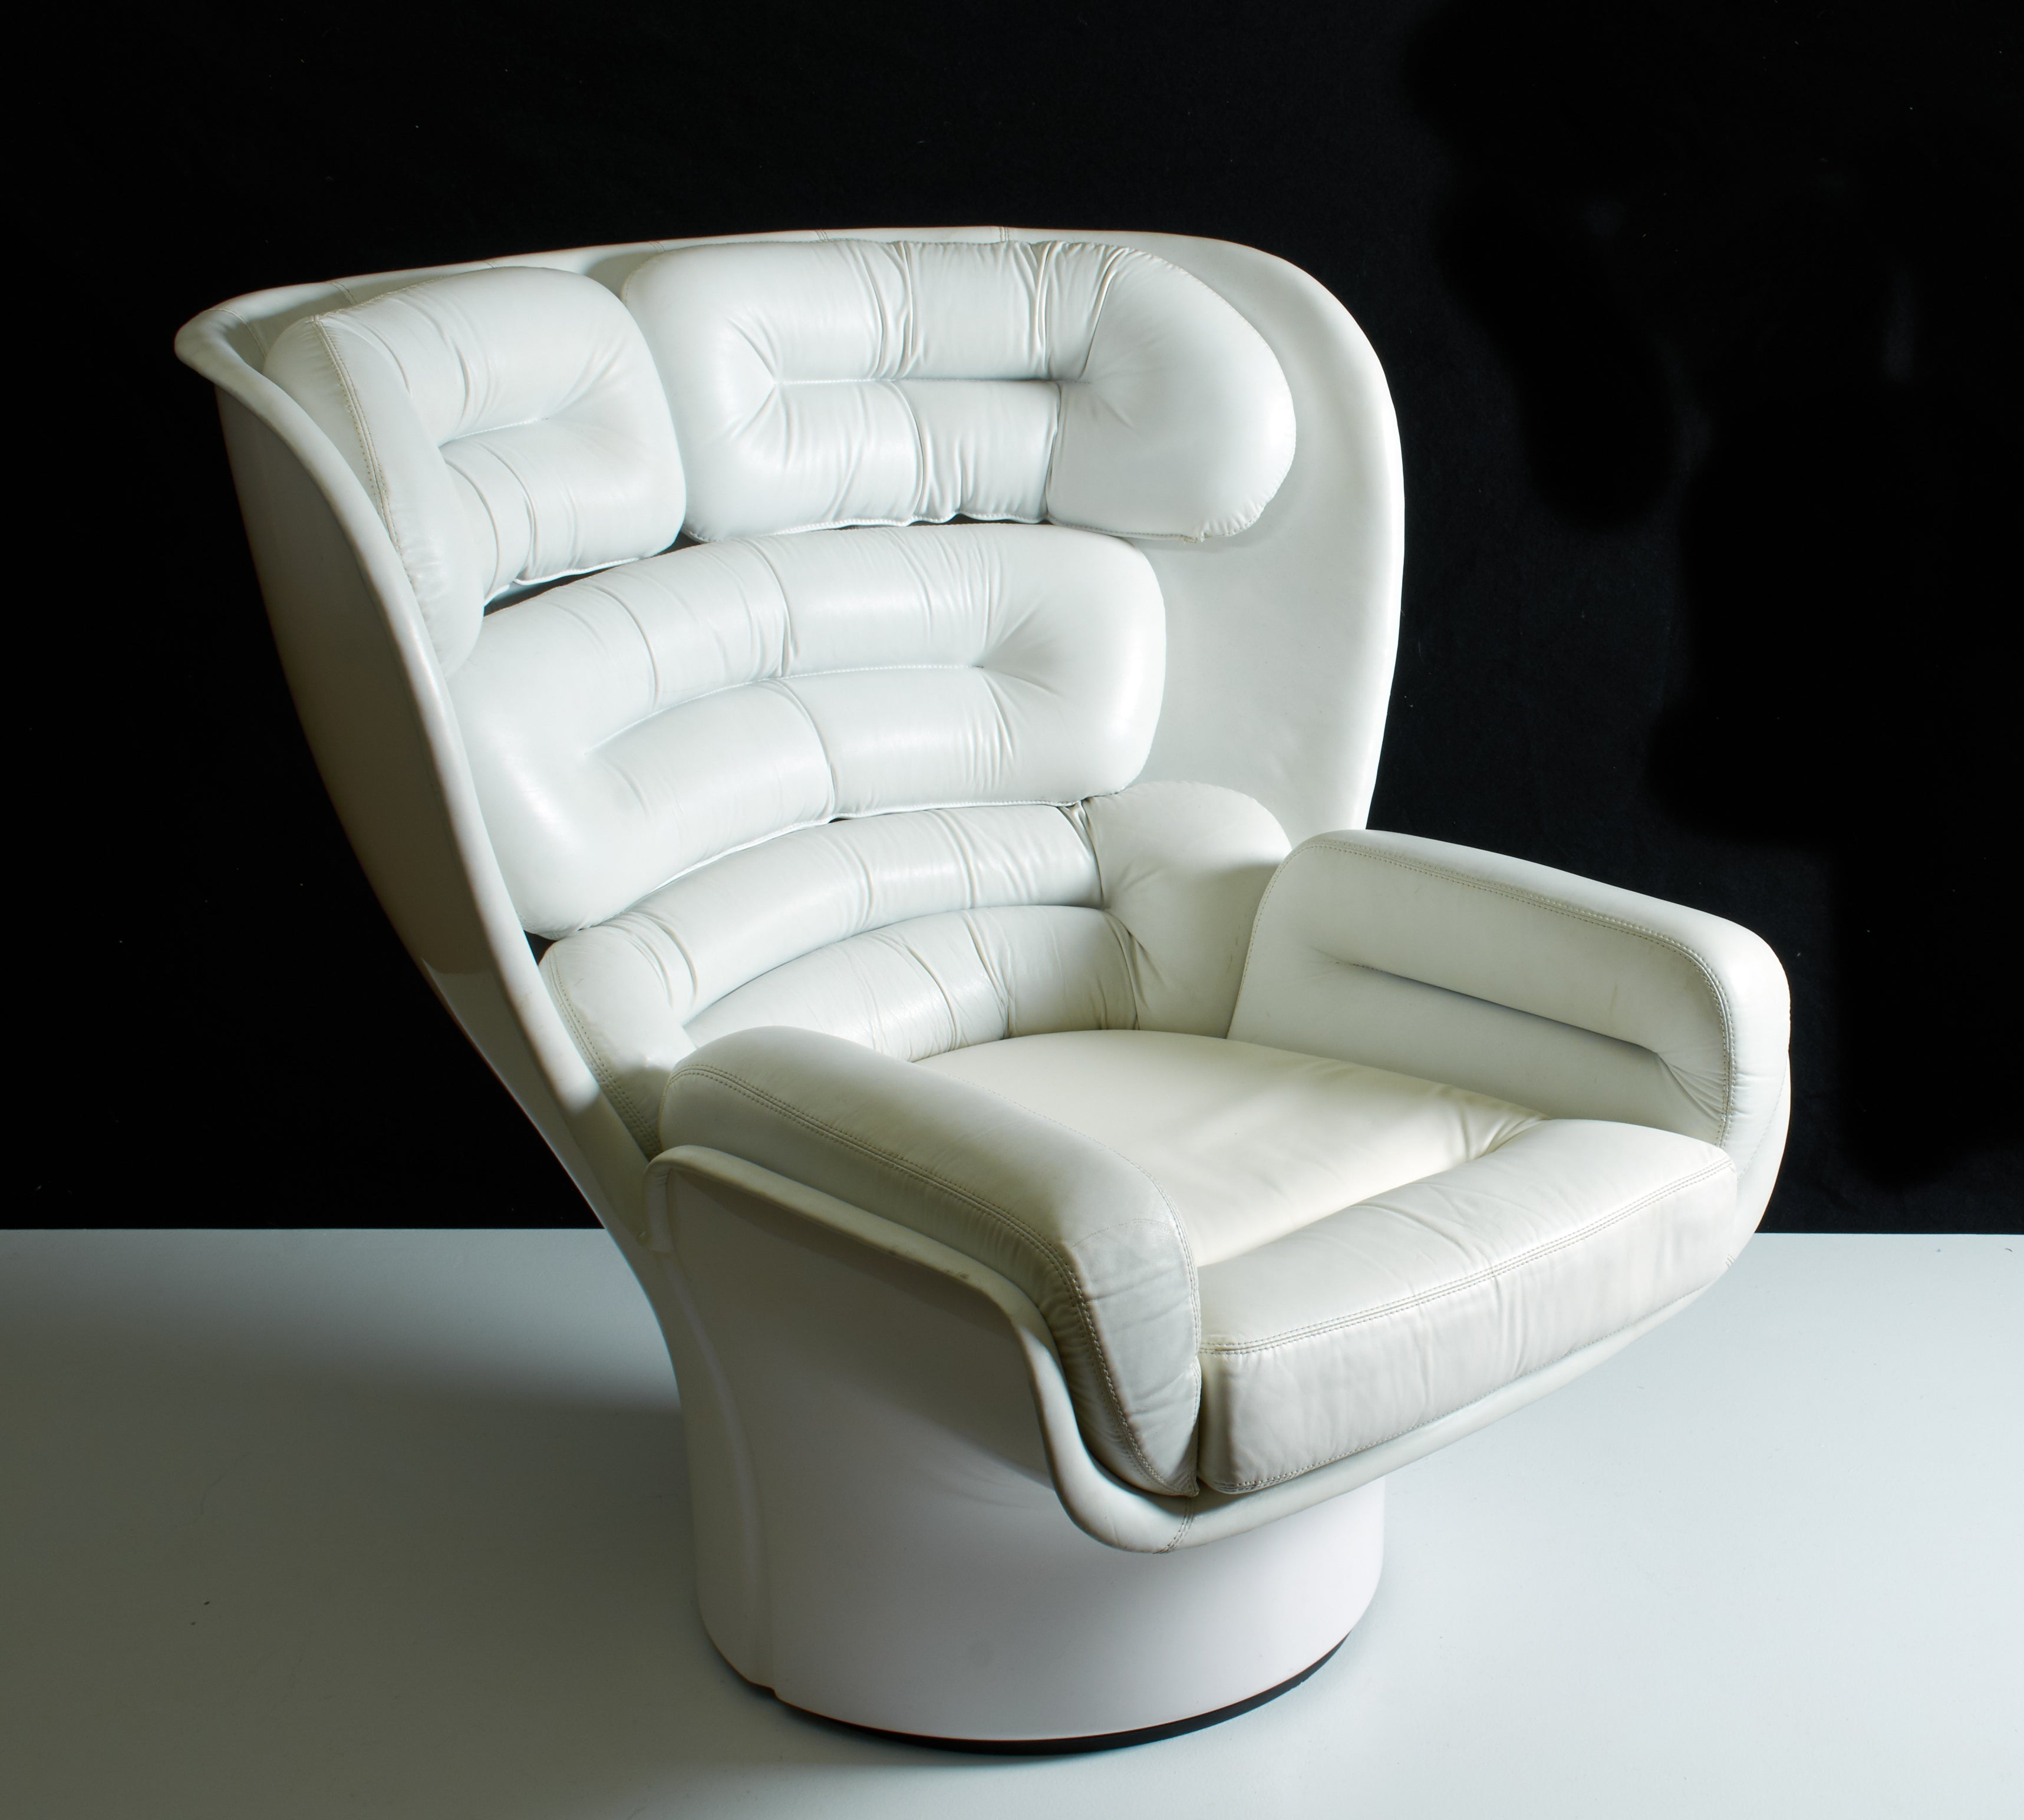 Joe Colombo Elda Chair circa 1960s